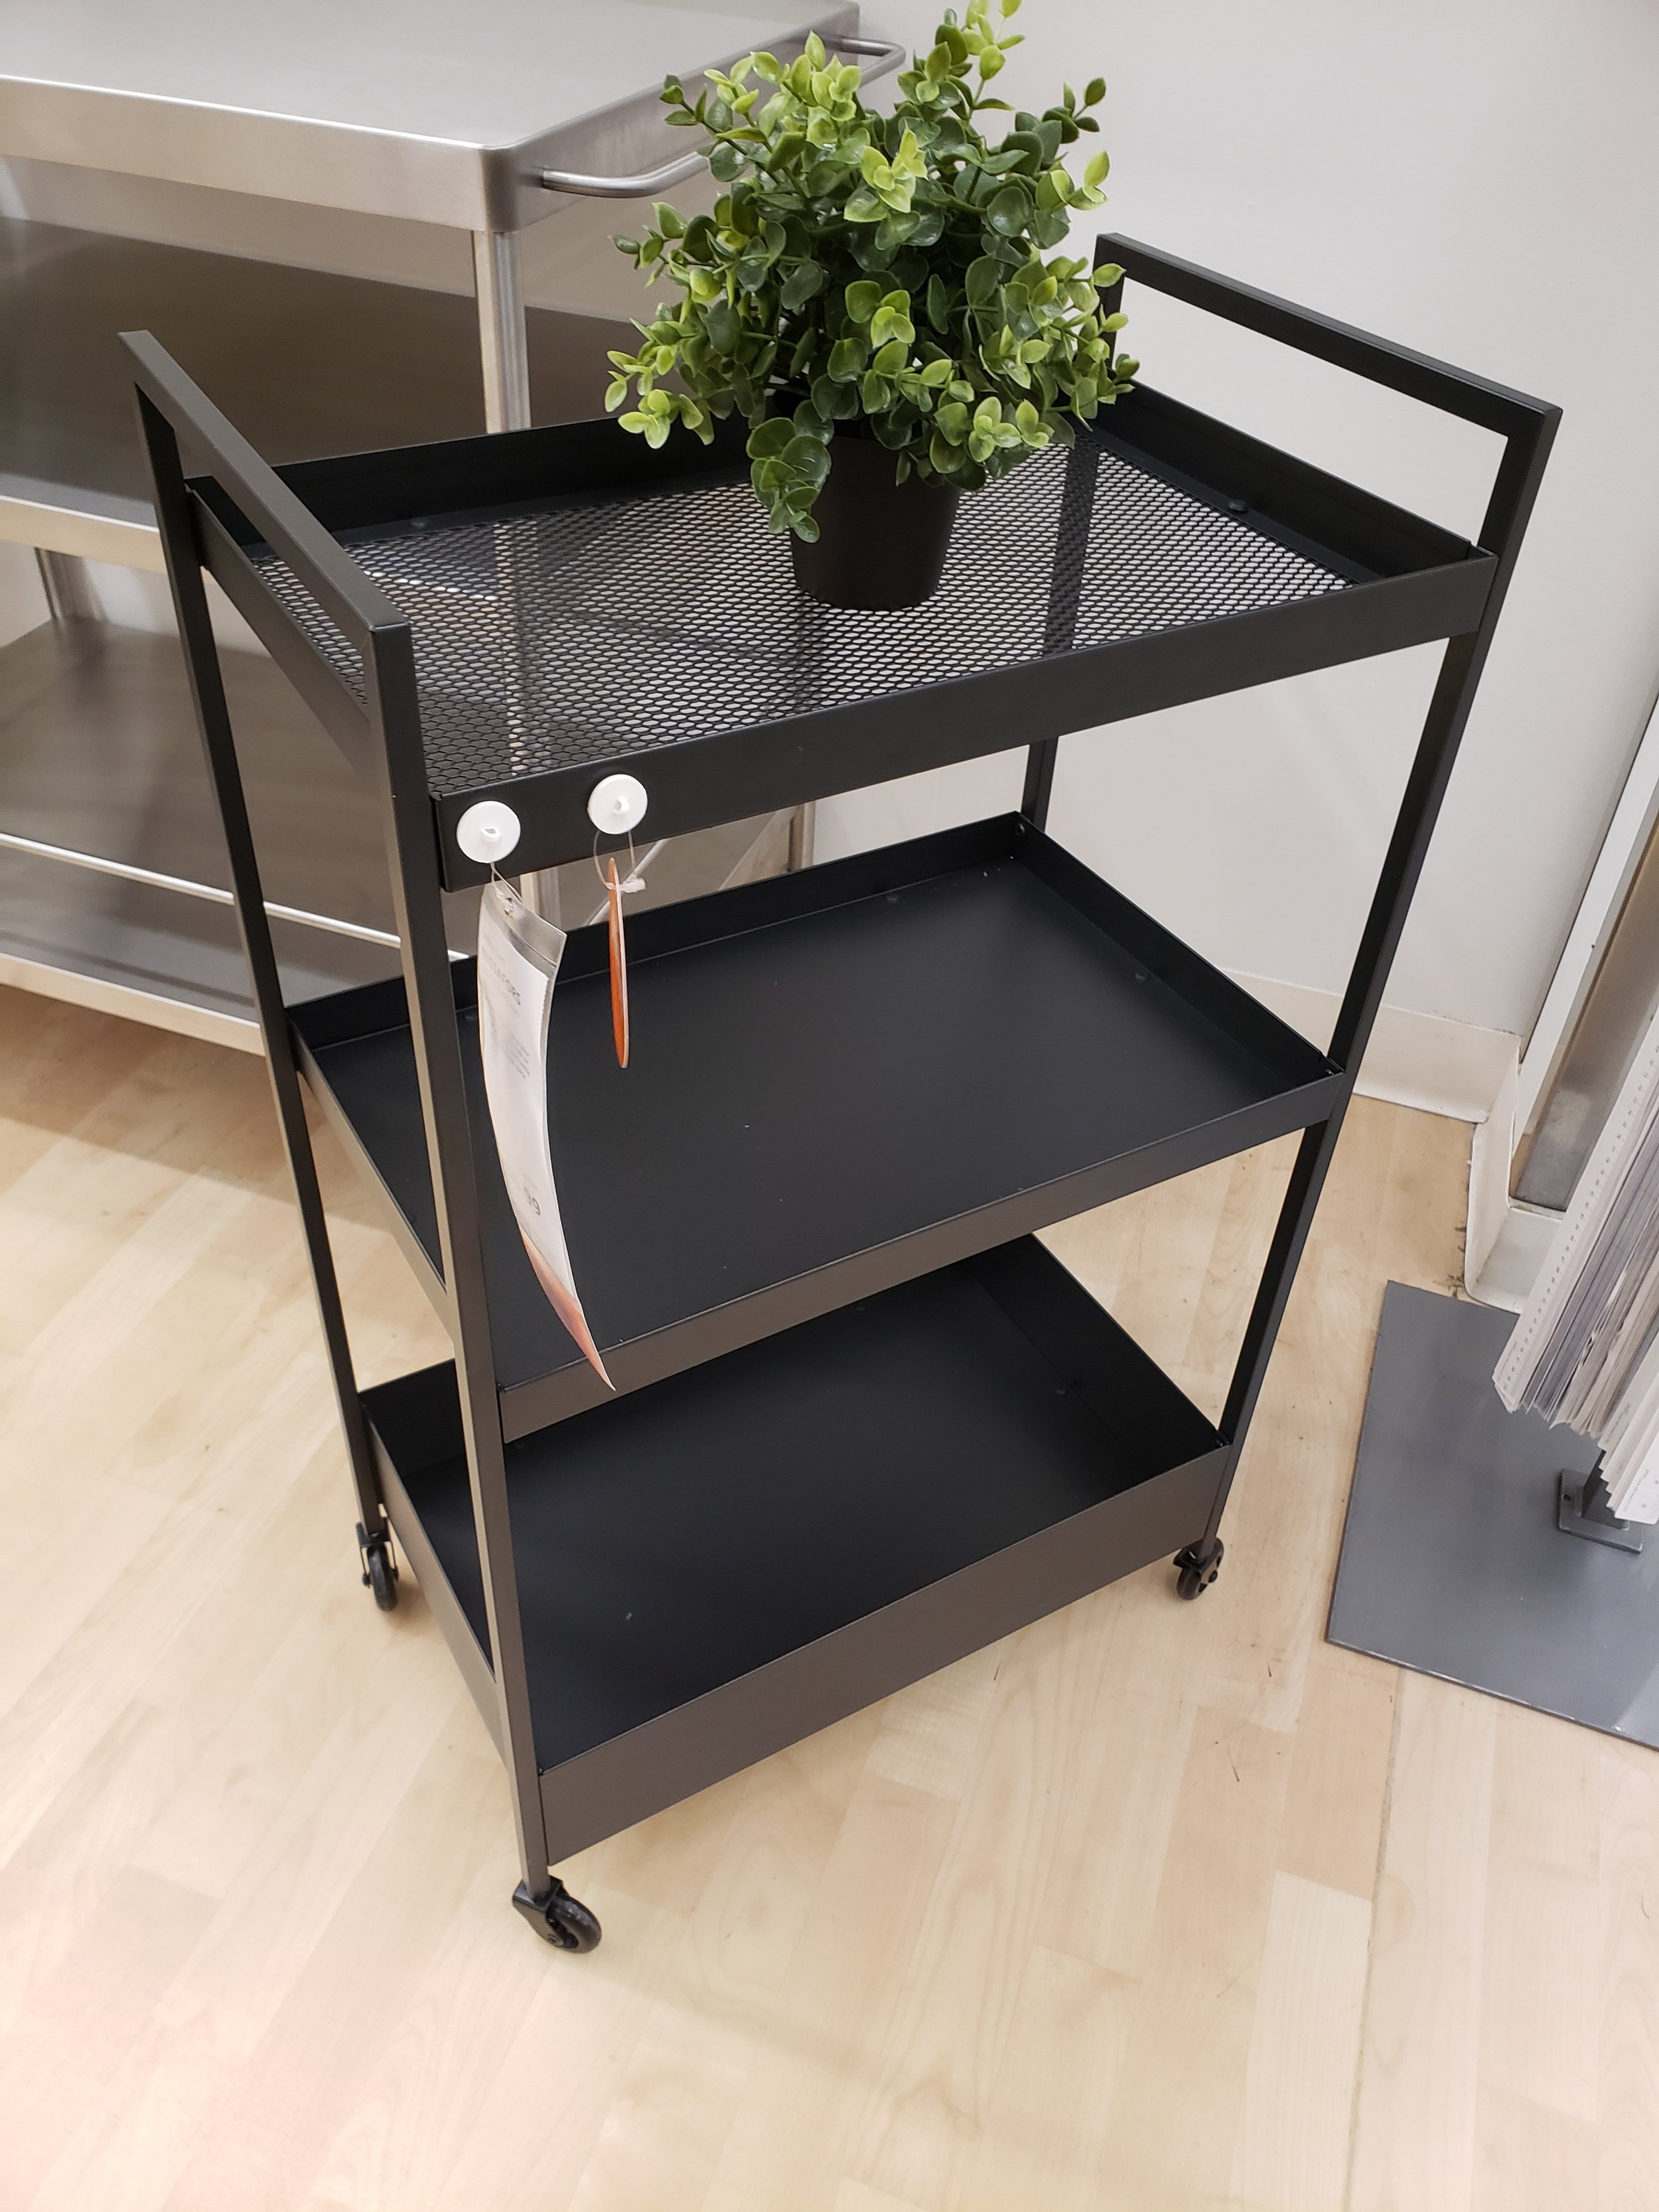 - The new Nissafors bar cart is easily 'hacked' by spray painting it any colour, or adding glass or wood to the shelves as you like. But as is for $36.99, it's a bargain for inside or even outside. Check it out here.